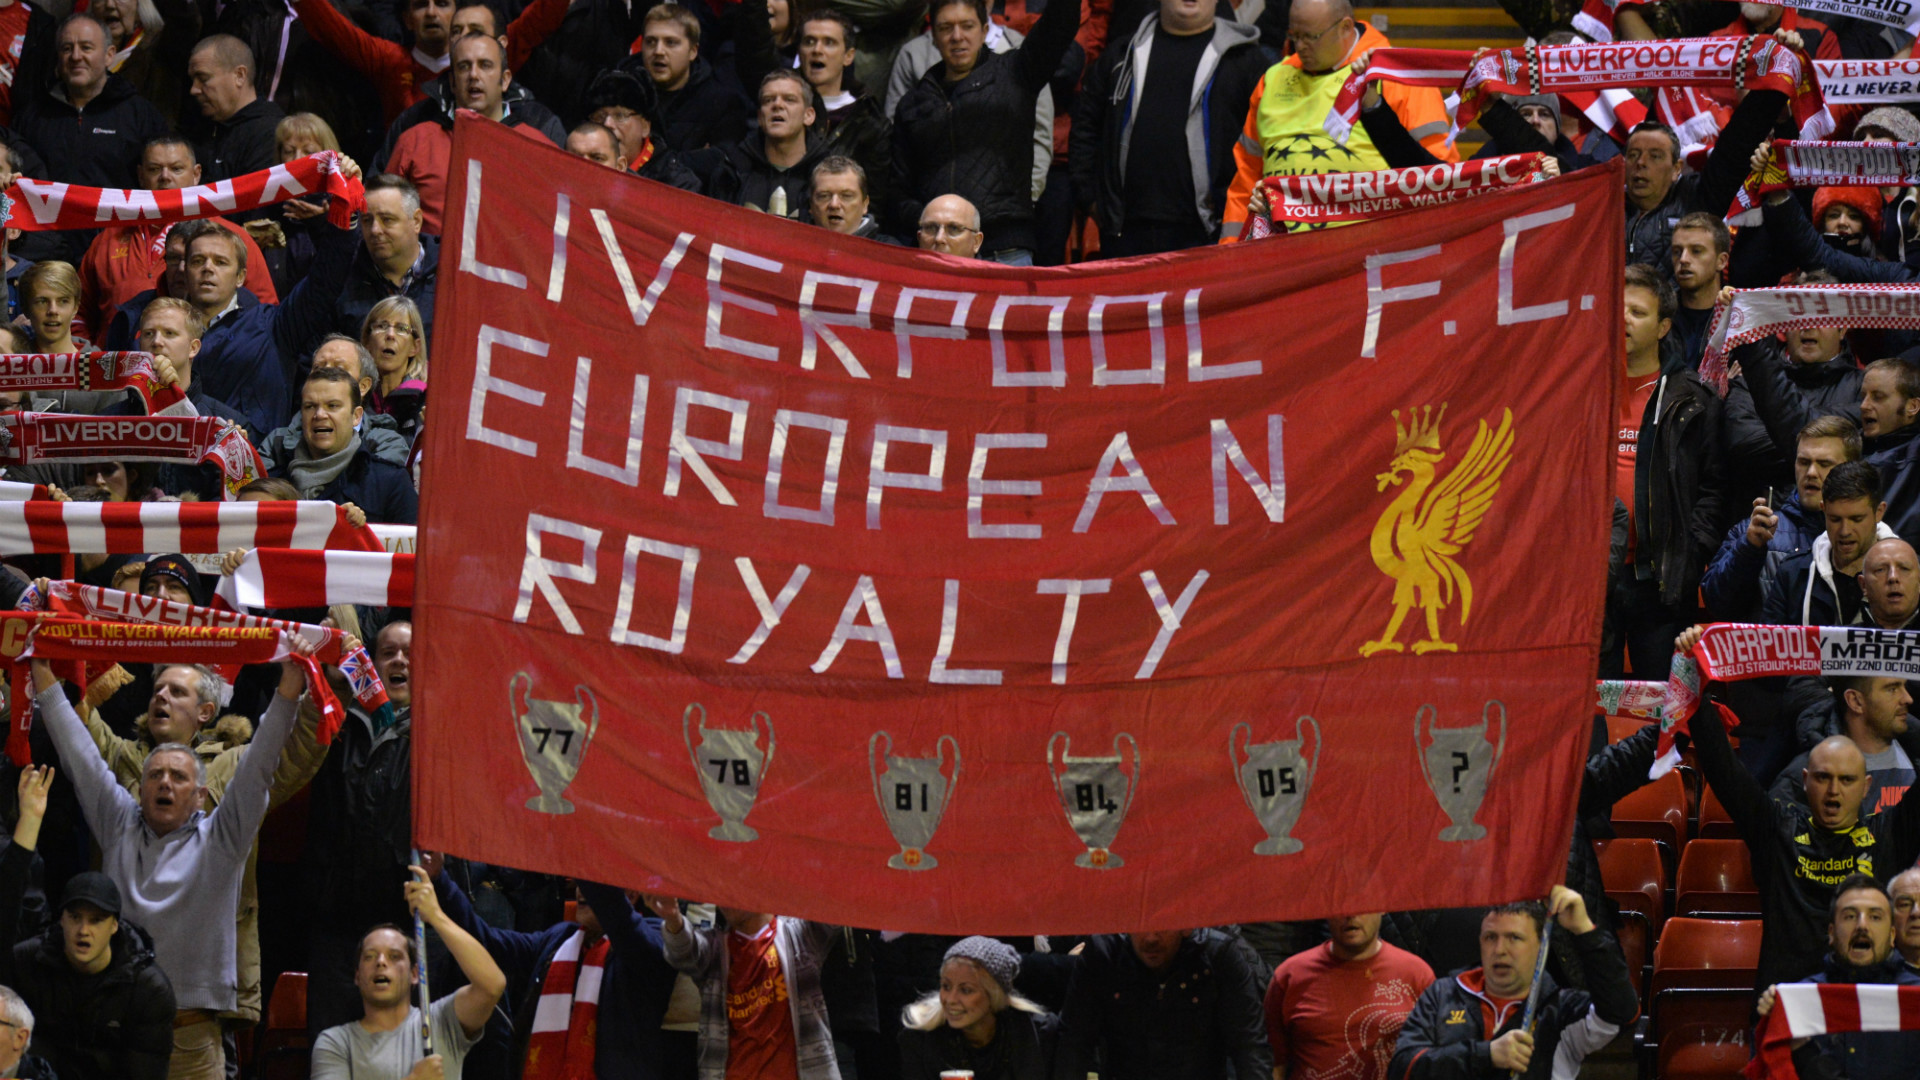 Liverpool fans UEFA Champions League 221014